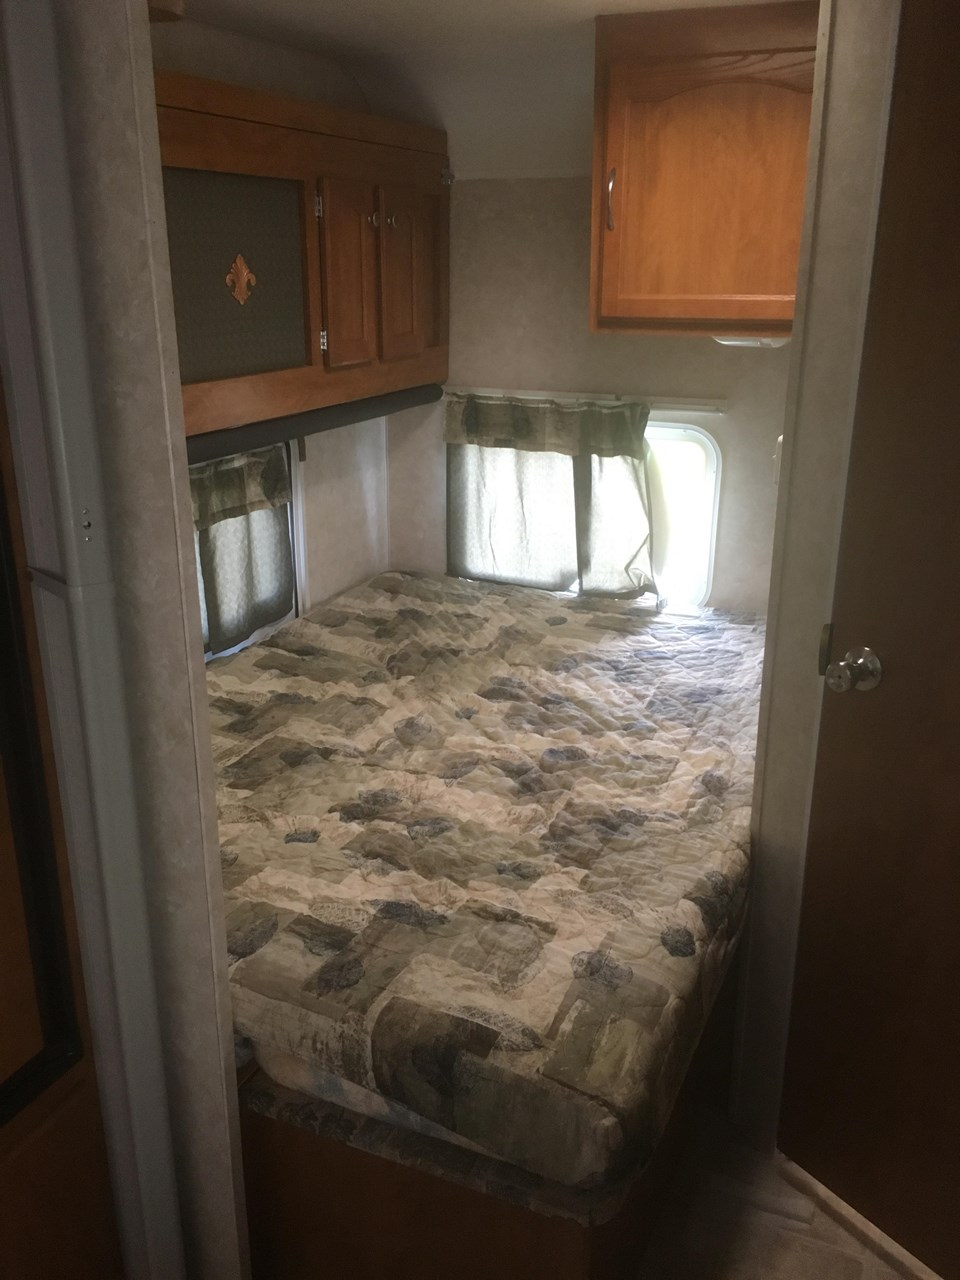 Clean Compact Travel Trailer With Bunks